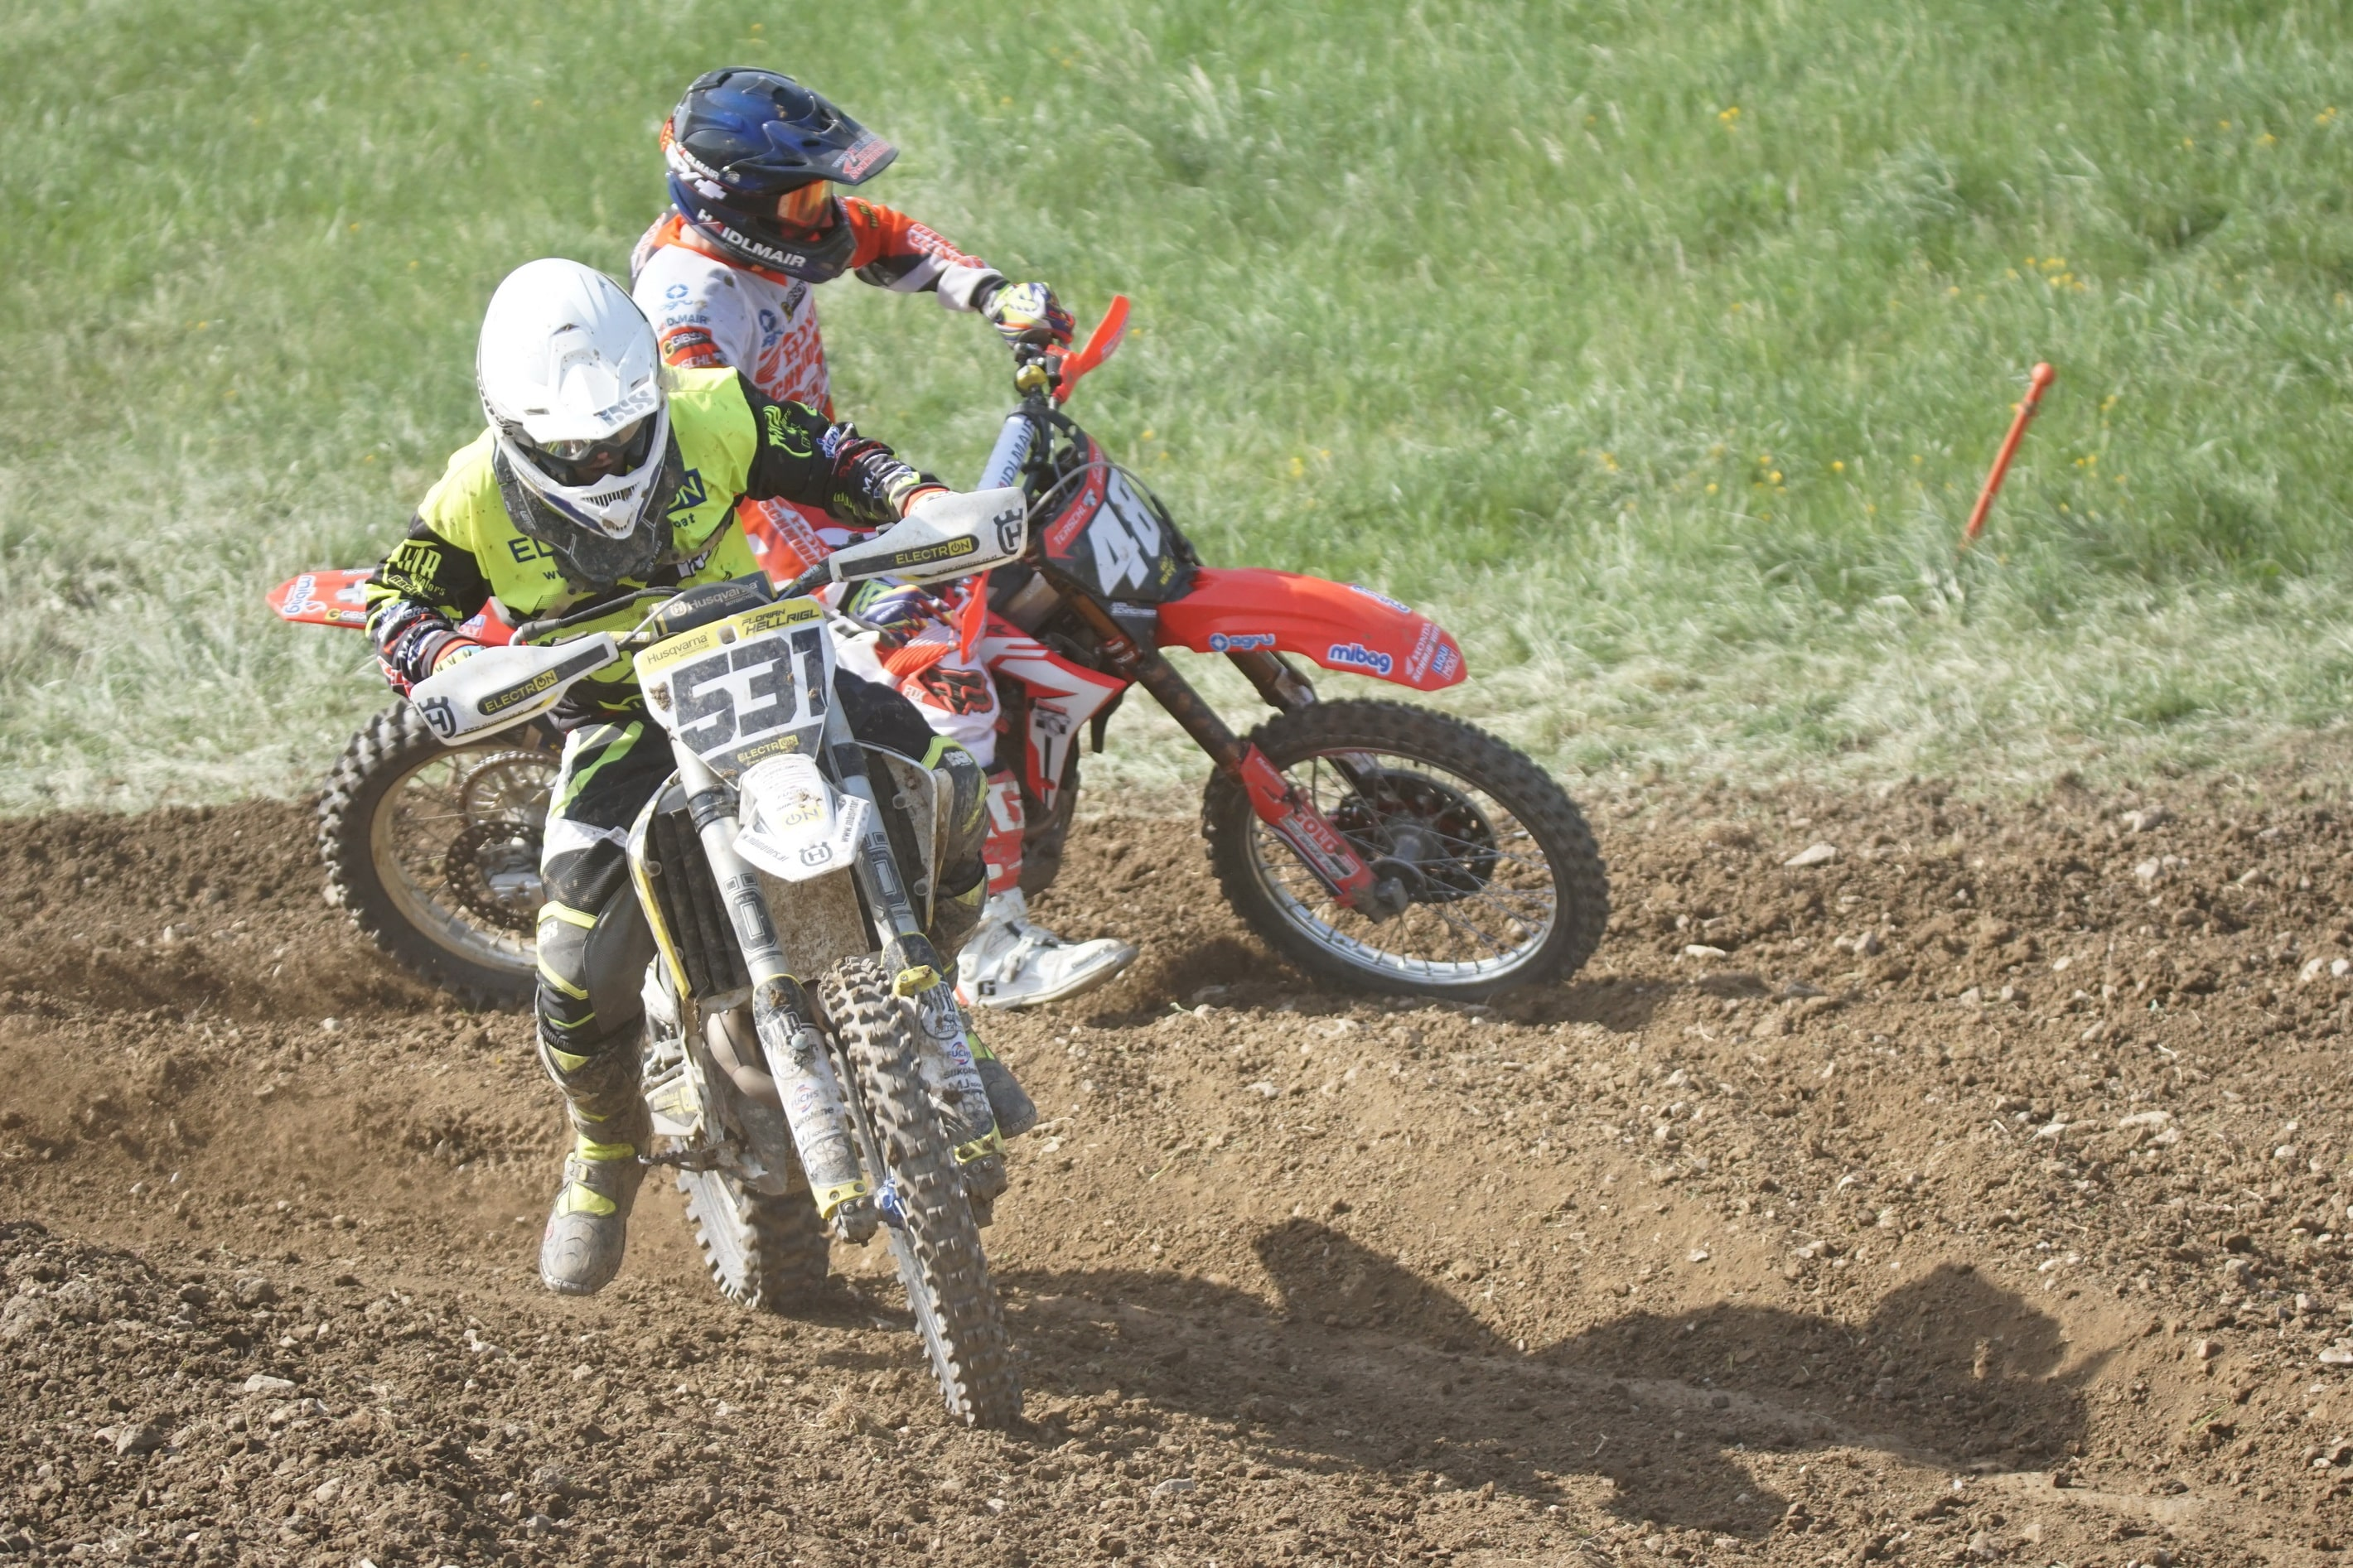 DSC 903_Moto Cross Sittendorf Teil1 am 29.04.2018